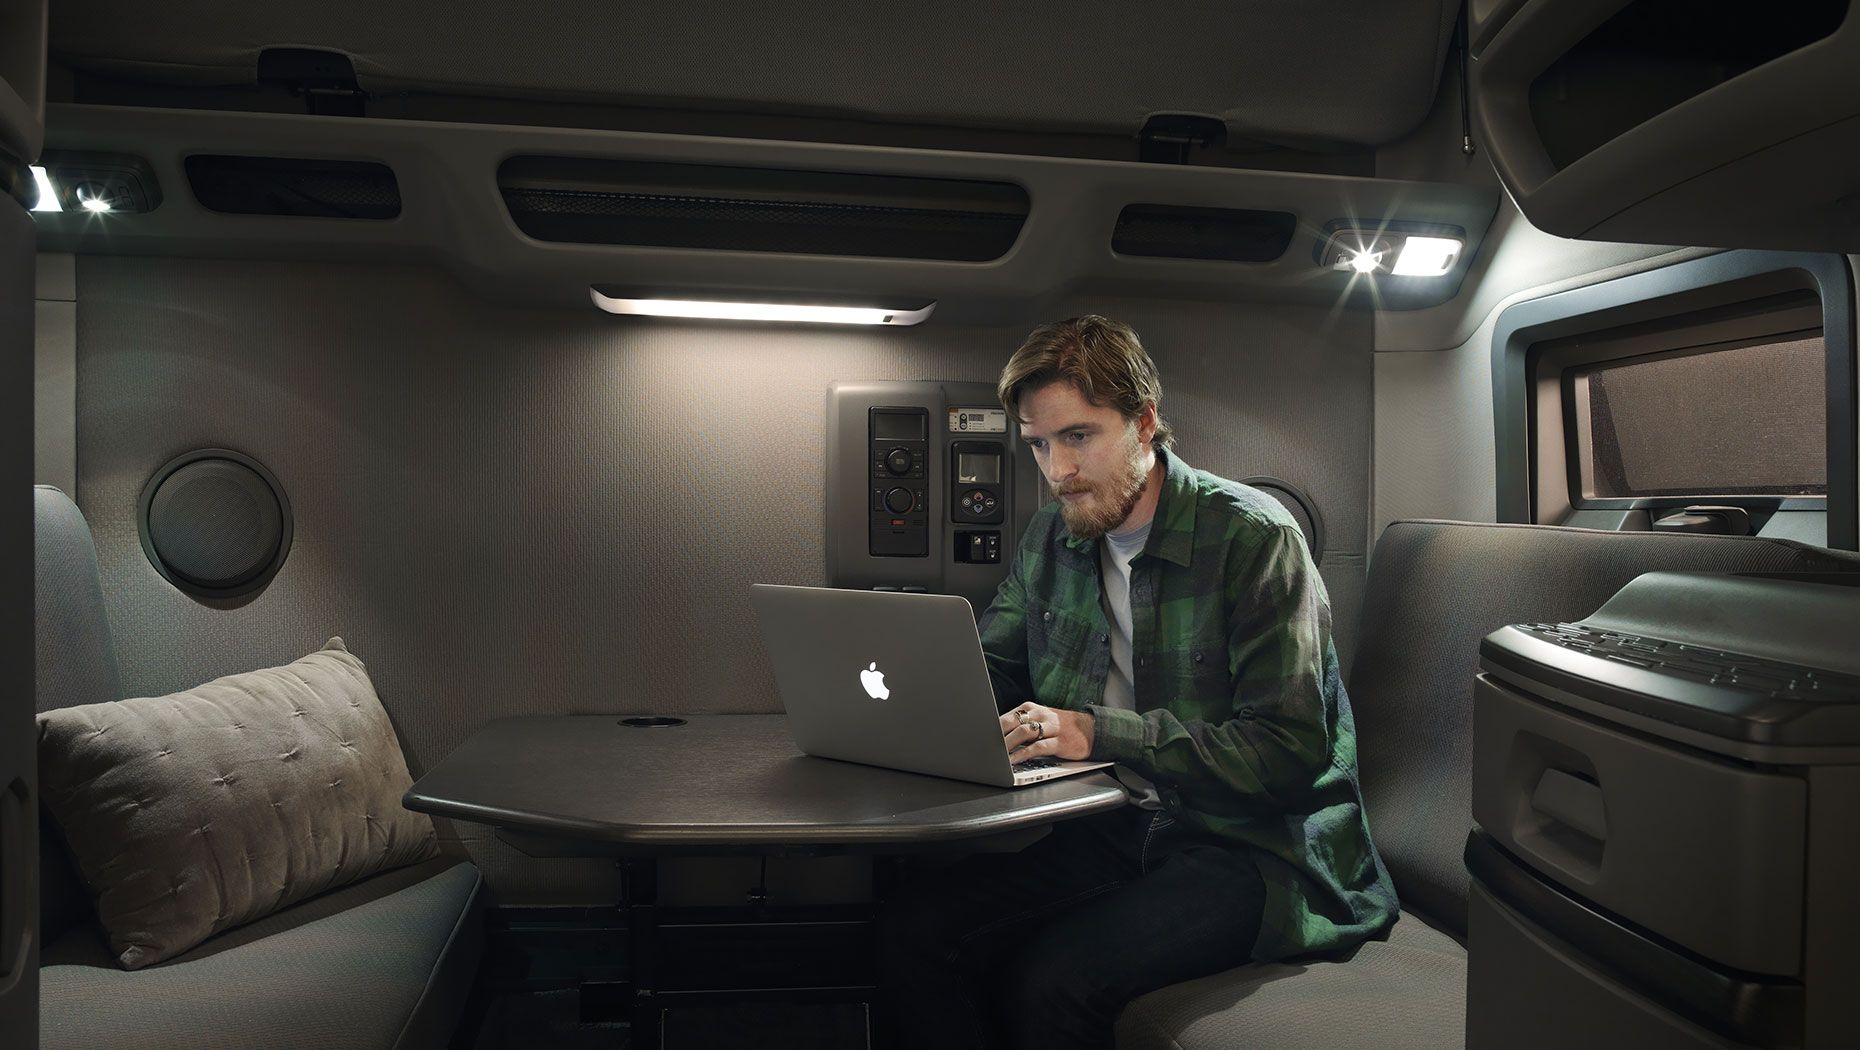 Volvo Trucks Offers Integrated Insurance to Customers in Select U.S. Markets